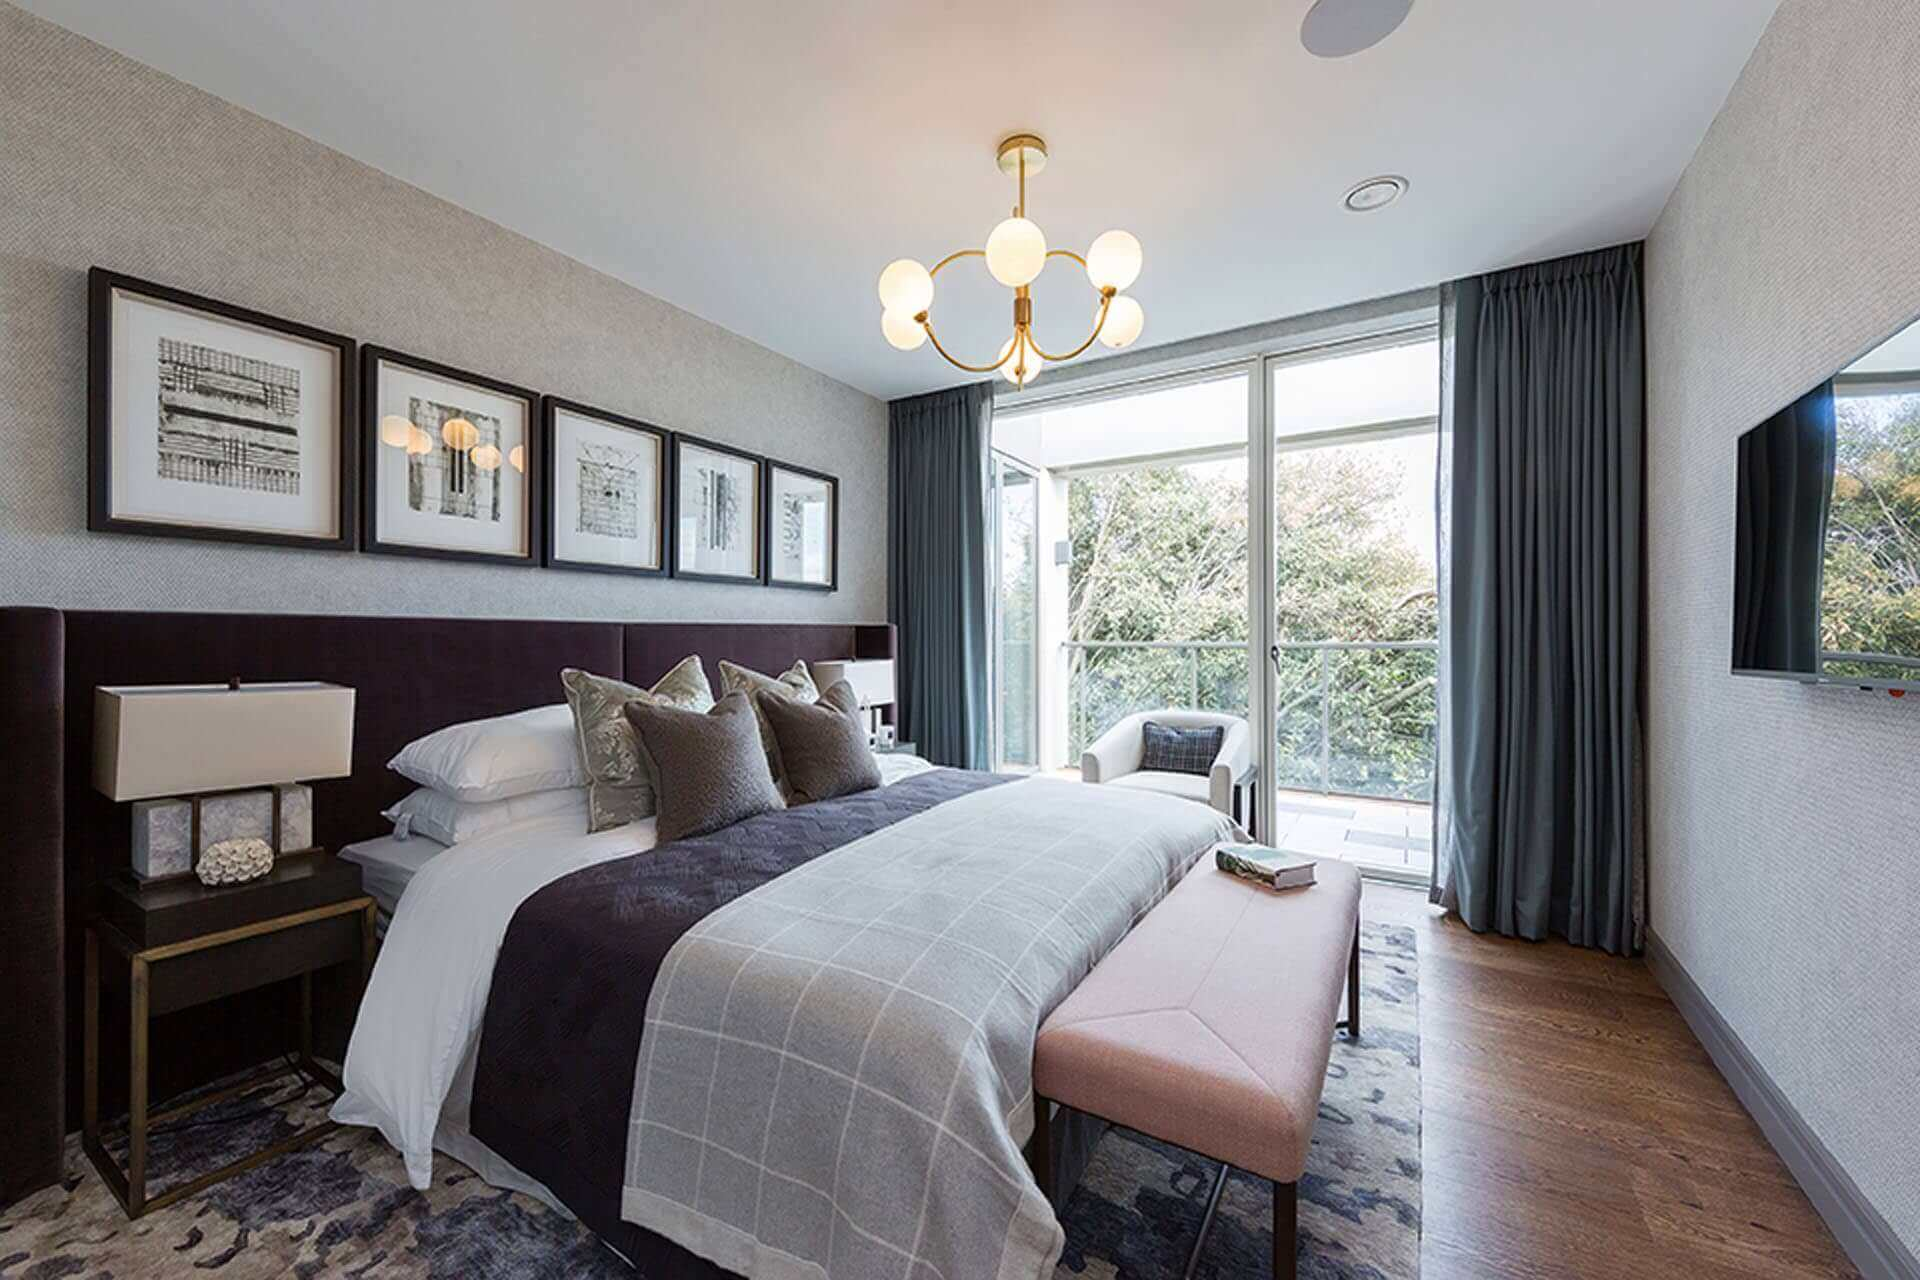 Guest bedroom at the penthouse apartments at Lansdowne Place in prestigious Ballsbridge